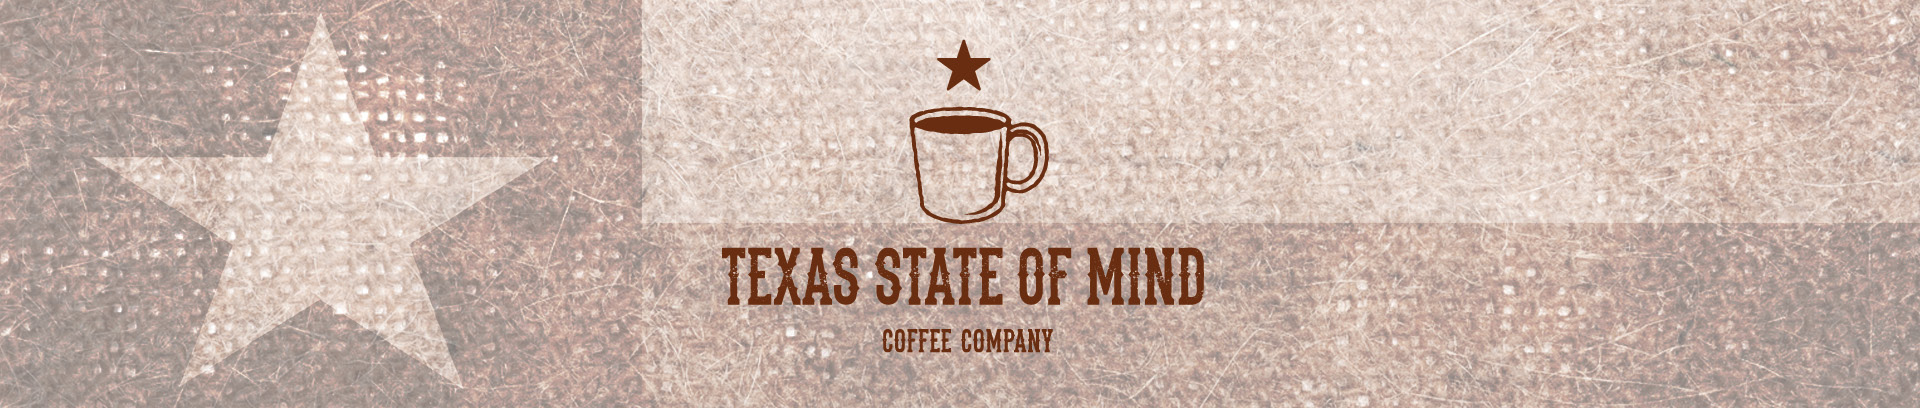 Texas State of Mind Coffee Branded Campaign